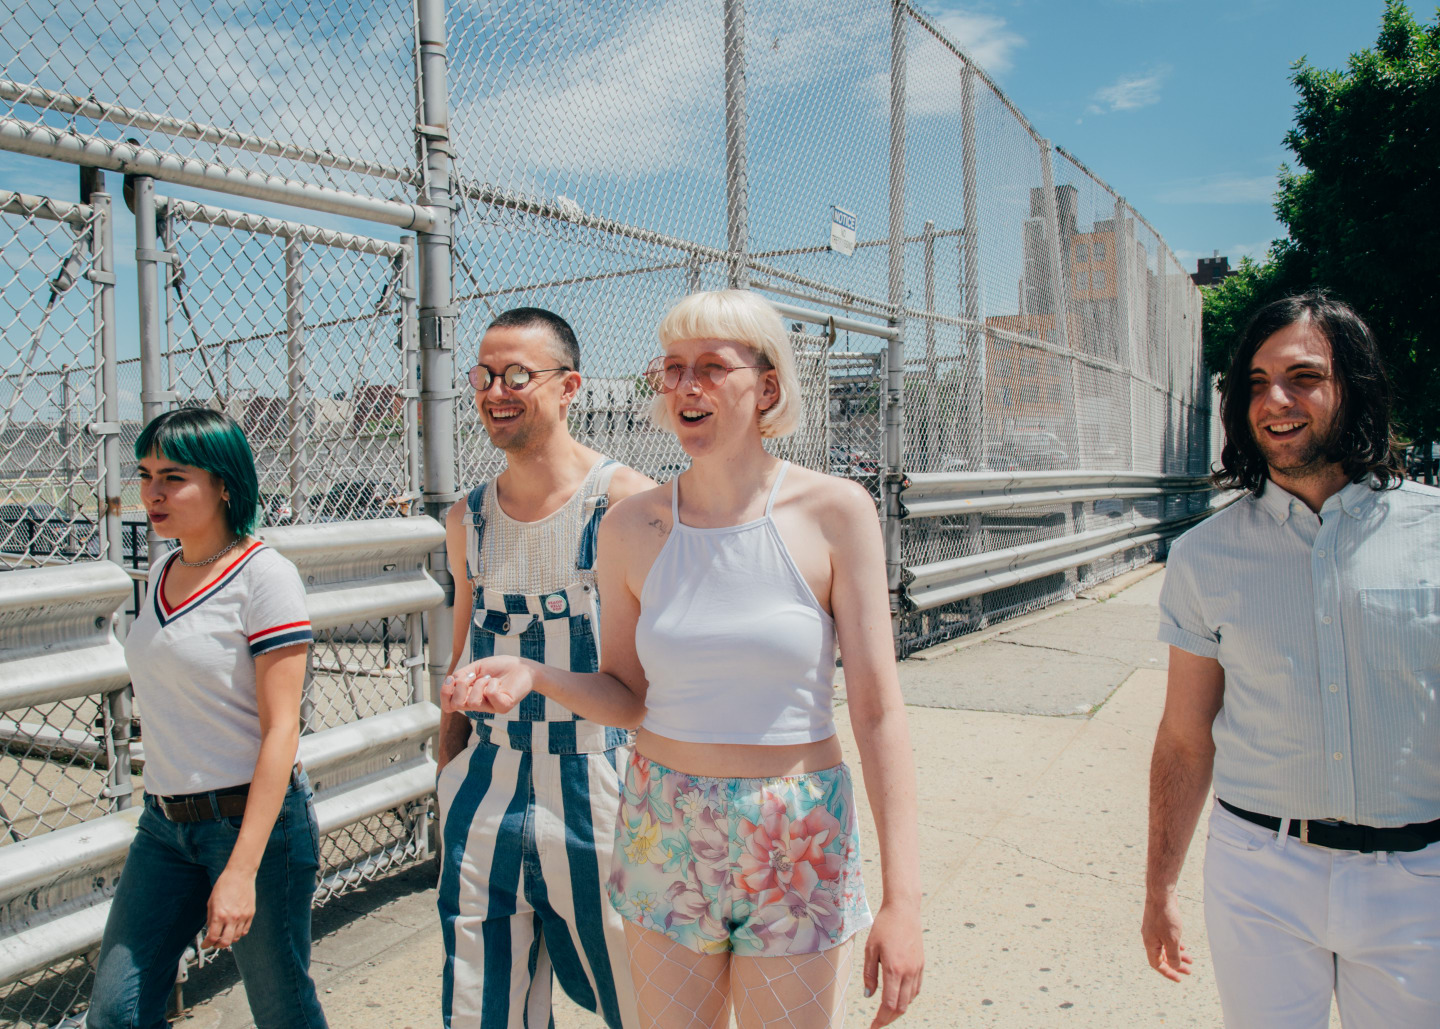 What makes Dilly Dally's return so sweet is them